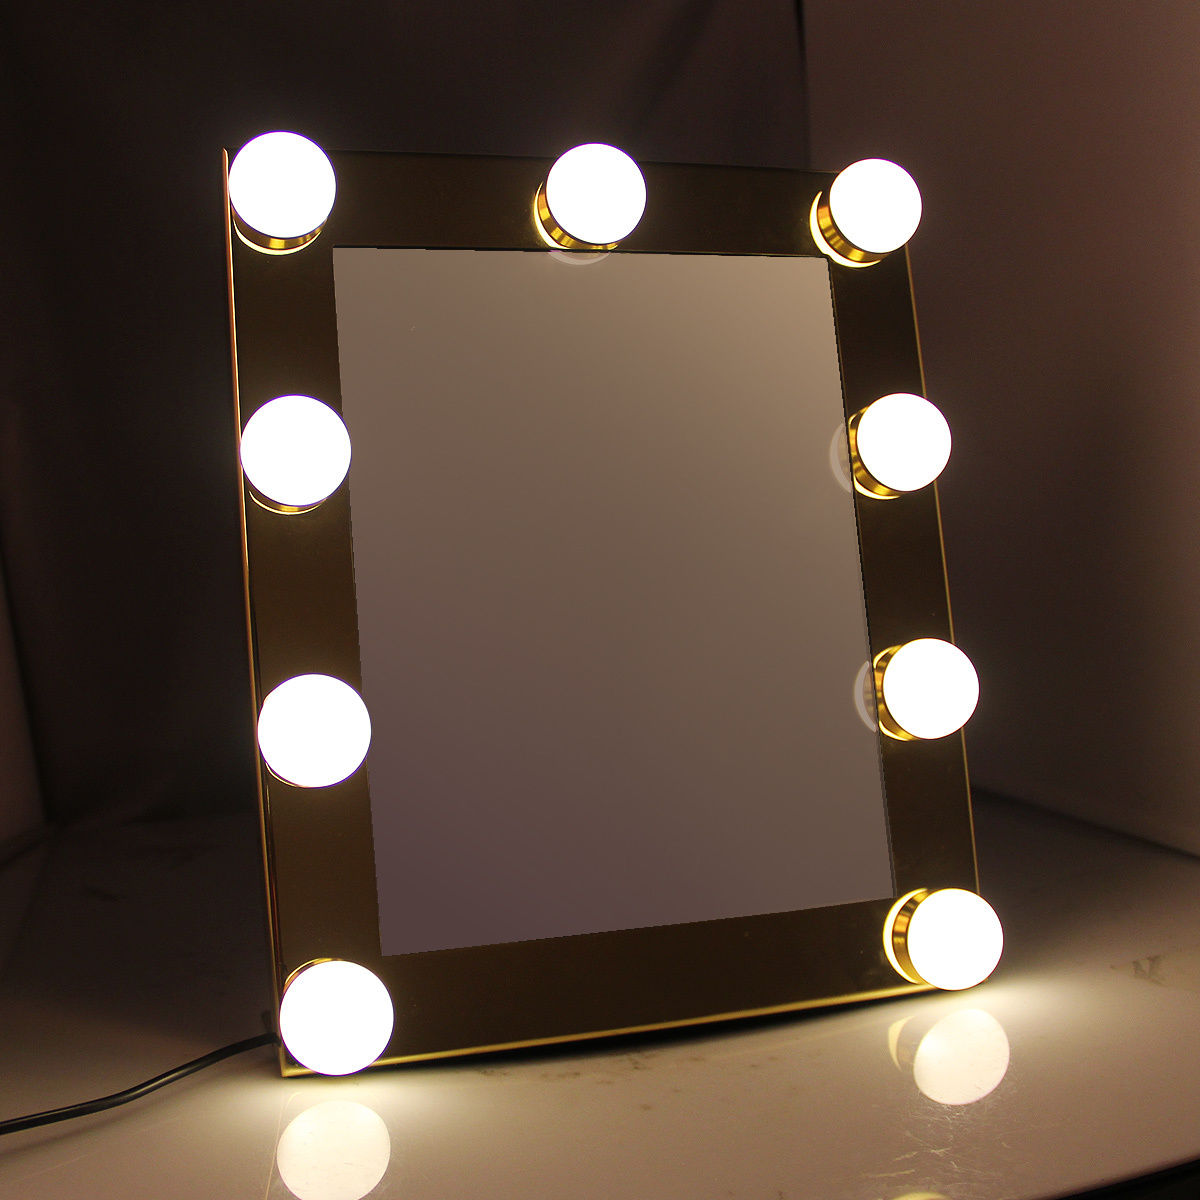 Hollywood Lighted Vanity Makeup Mirror Tabletop Dimmable 9 Led Bulb Lights Touch Control LED Makeup Mirror Beauty Tool 2018 beautmei hollywood led touch screen